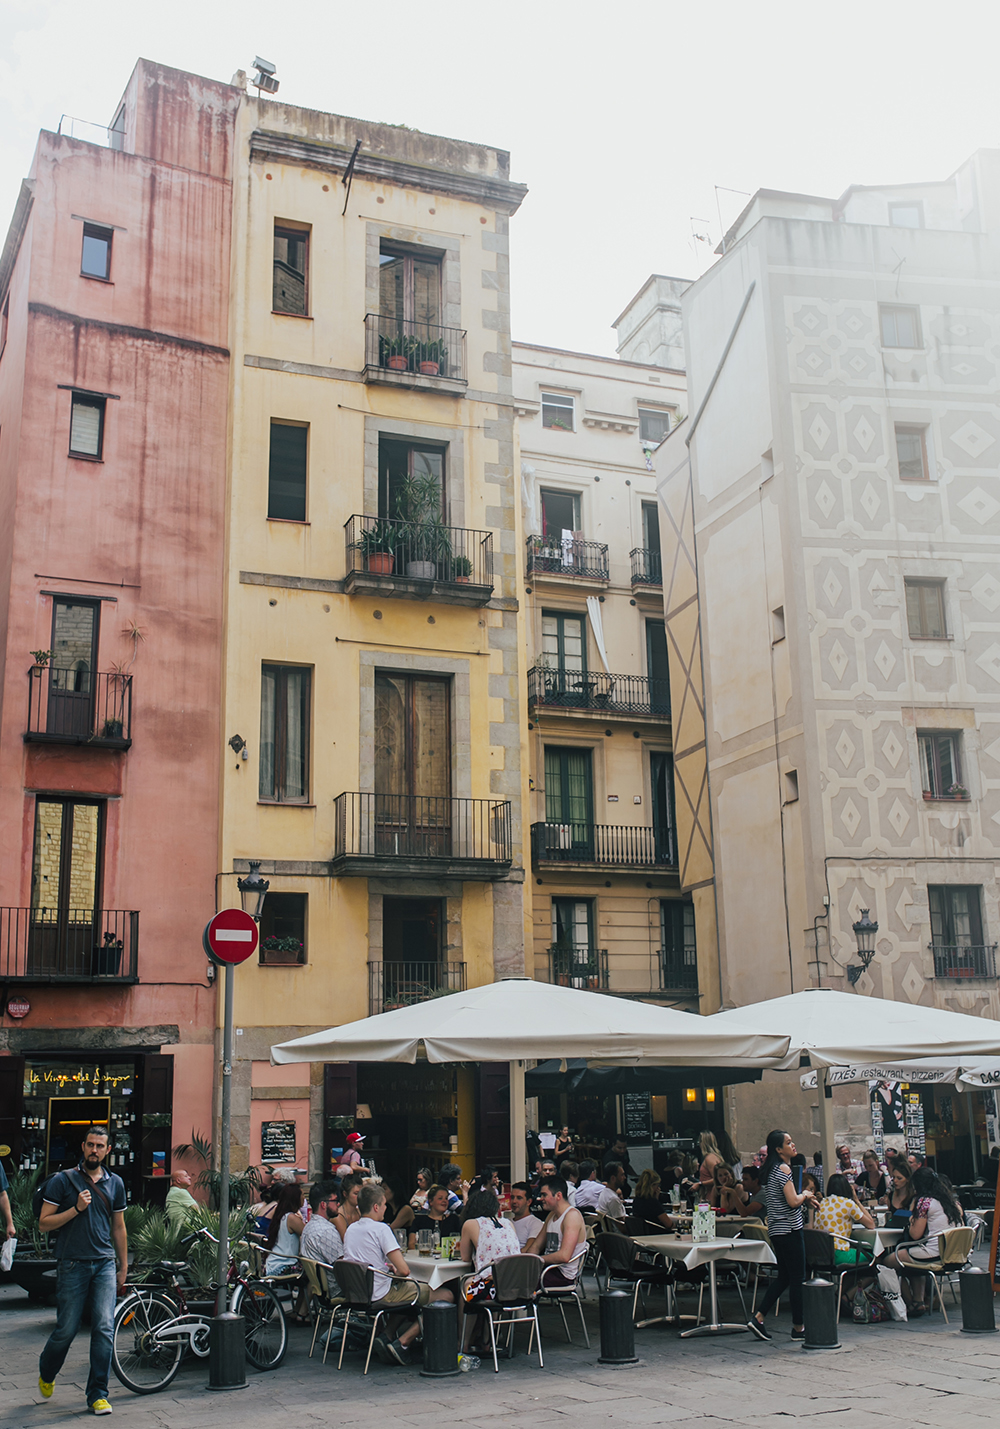 livvyland-blog-olivia-watson-travel-fashion-blogger-barcelona-spain-las-ramblas-colorful-buildings-architecture-cafe